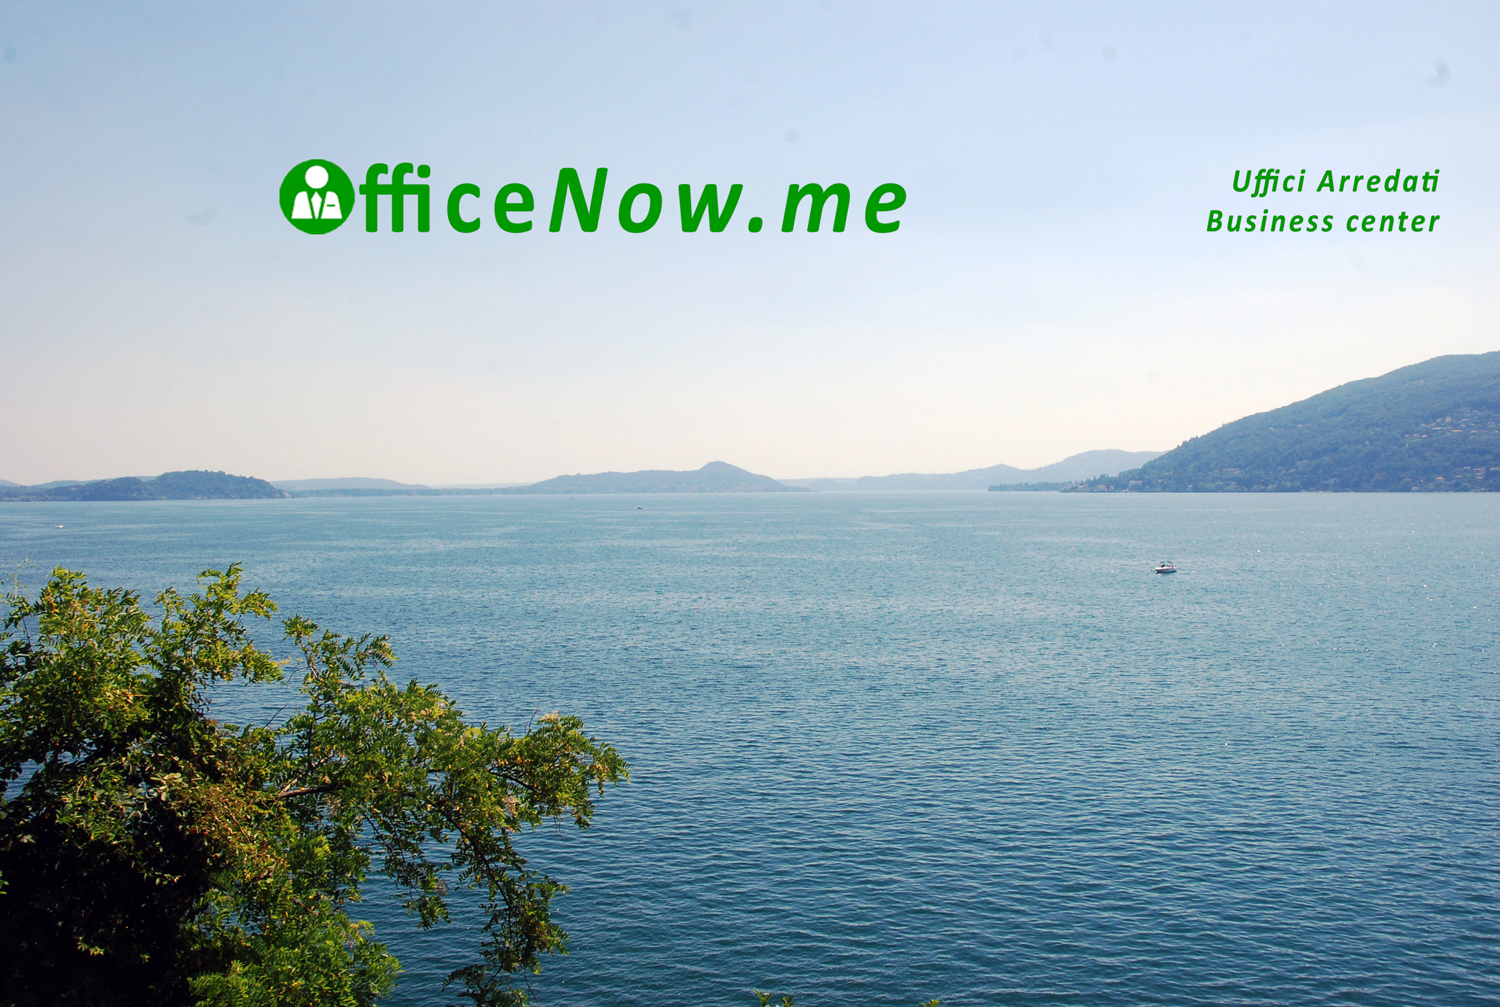 OfficeNow, business center, Lago Maggiore, uffici arredati